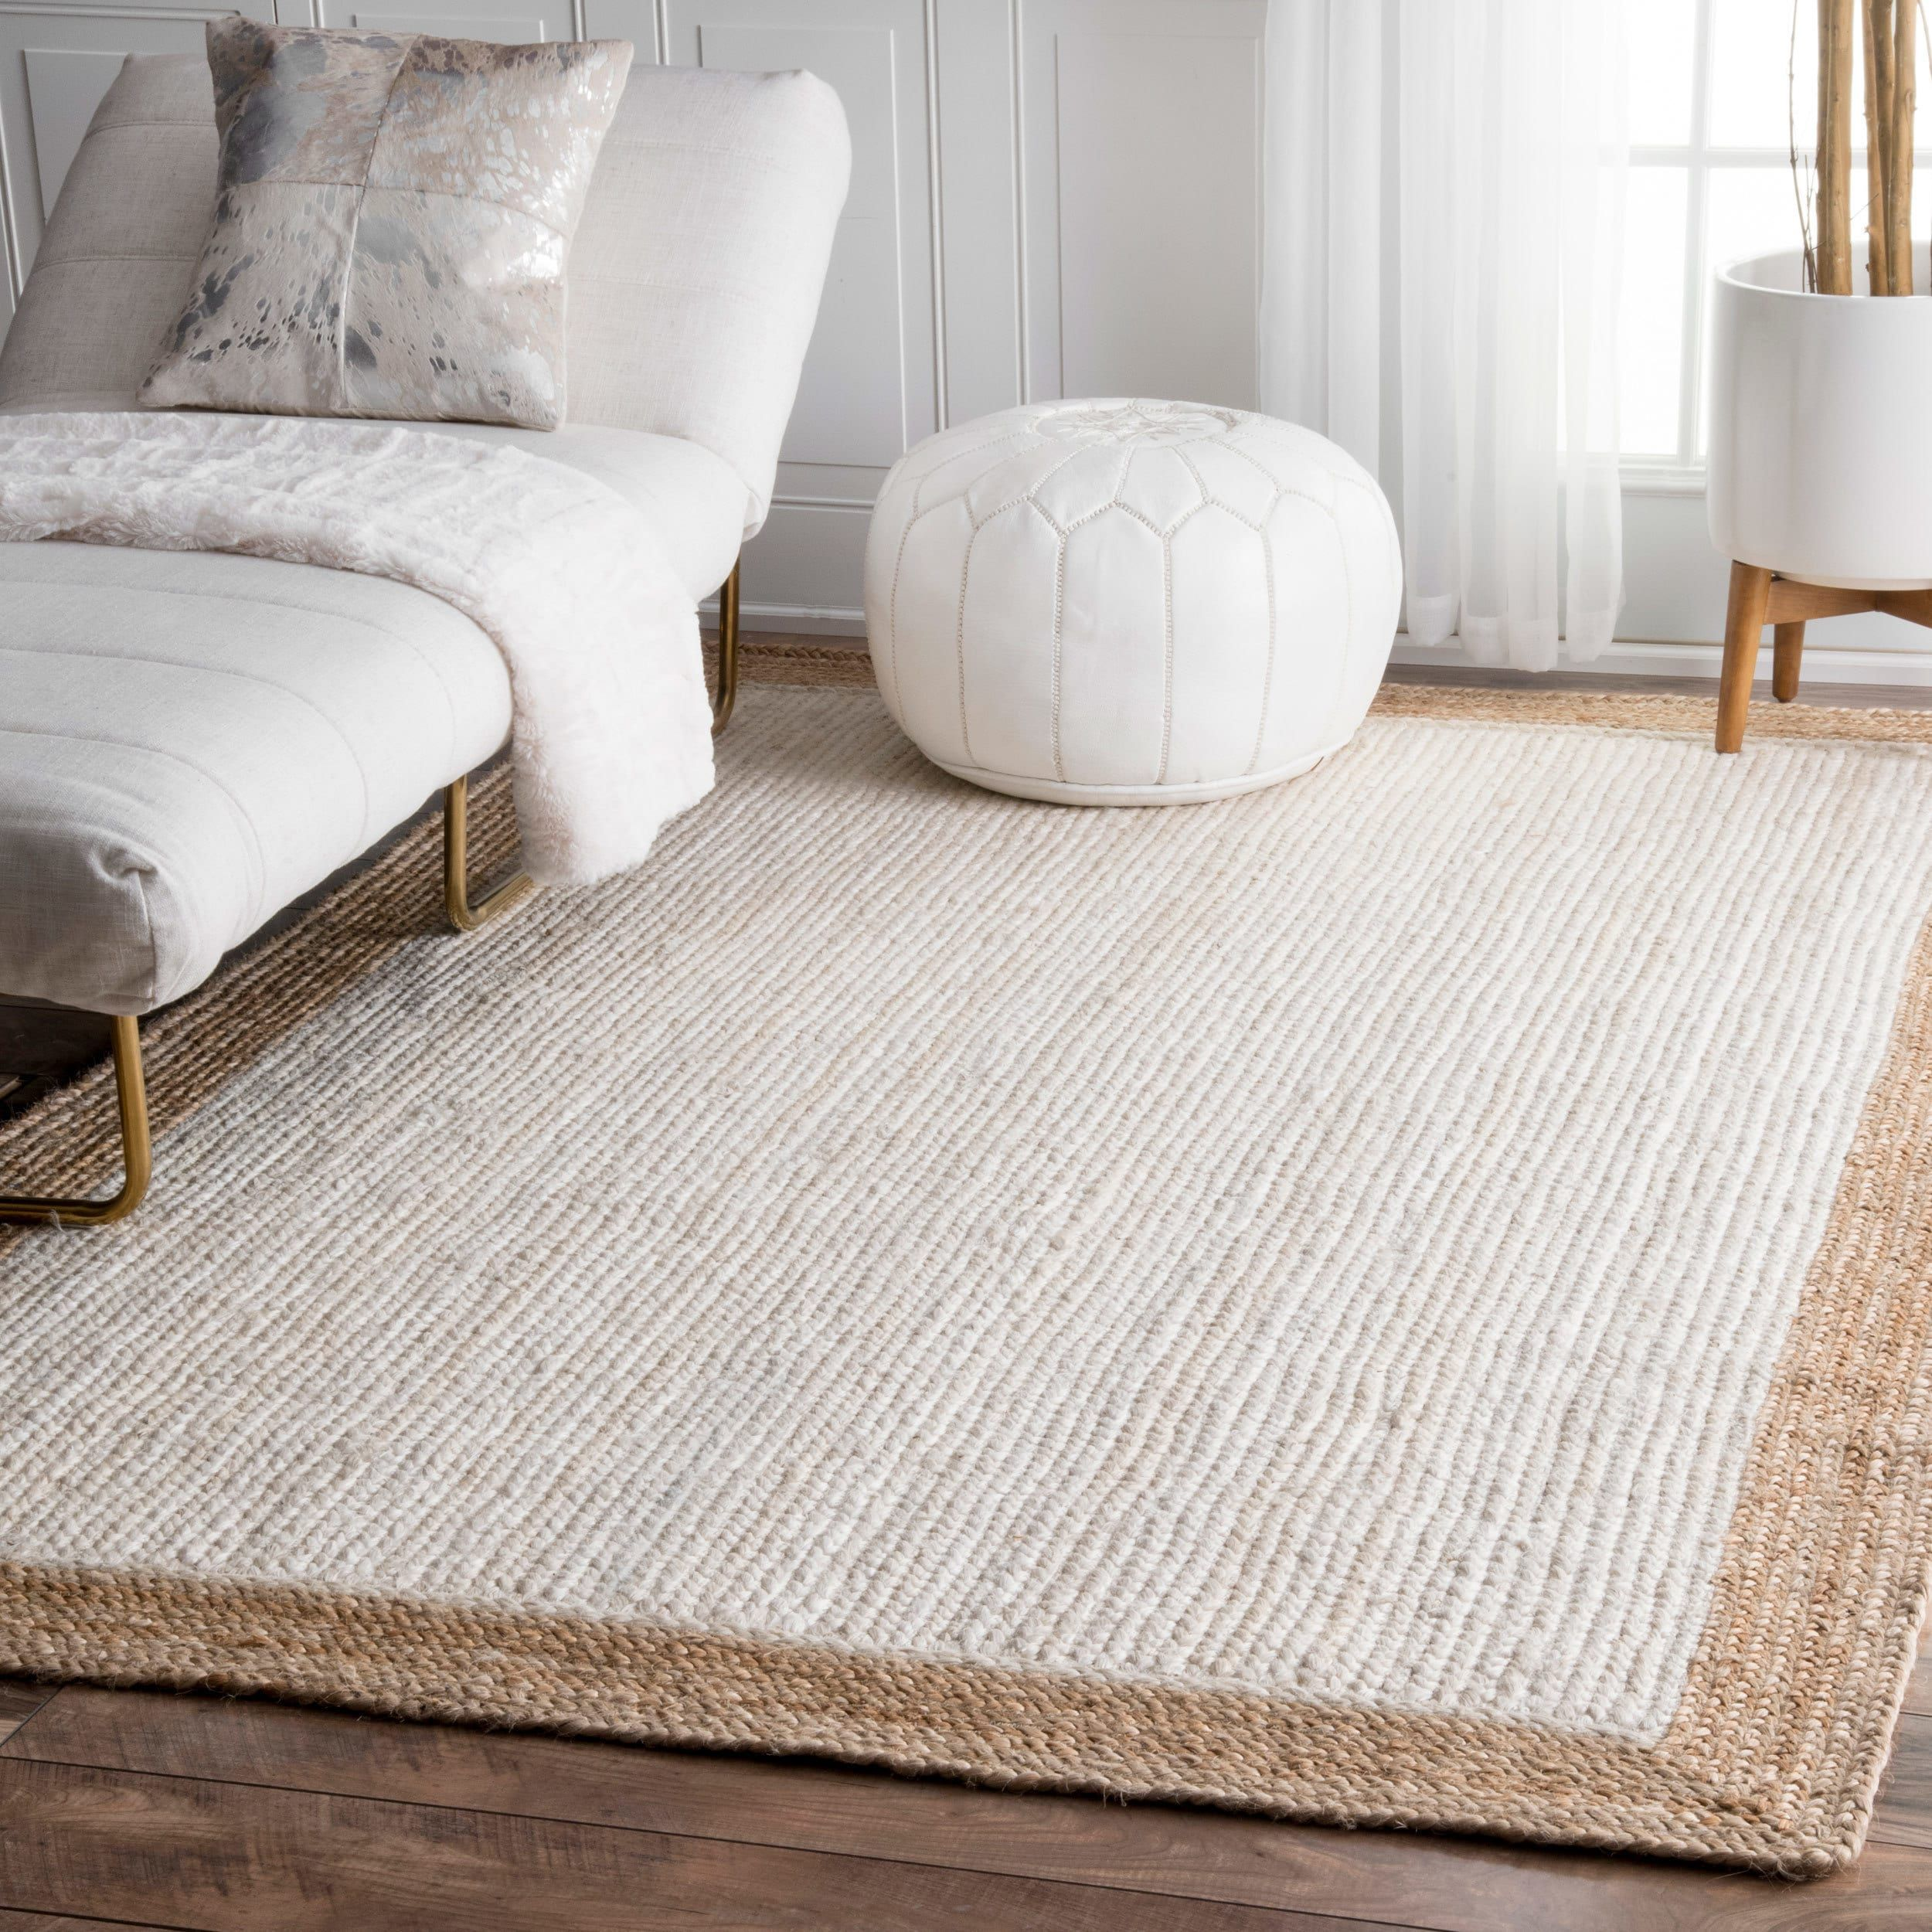 The gray barn cinch buckle braided reversible border white jute area rug 2 x 3